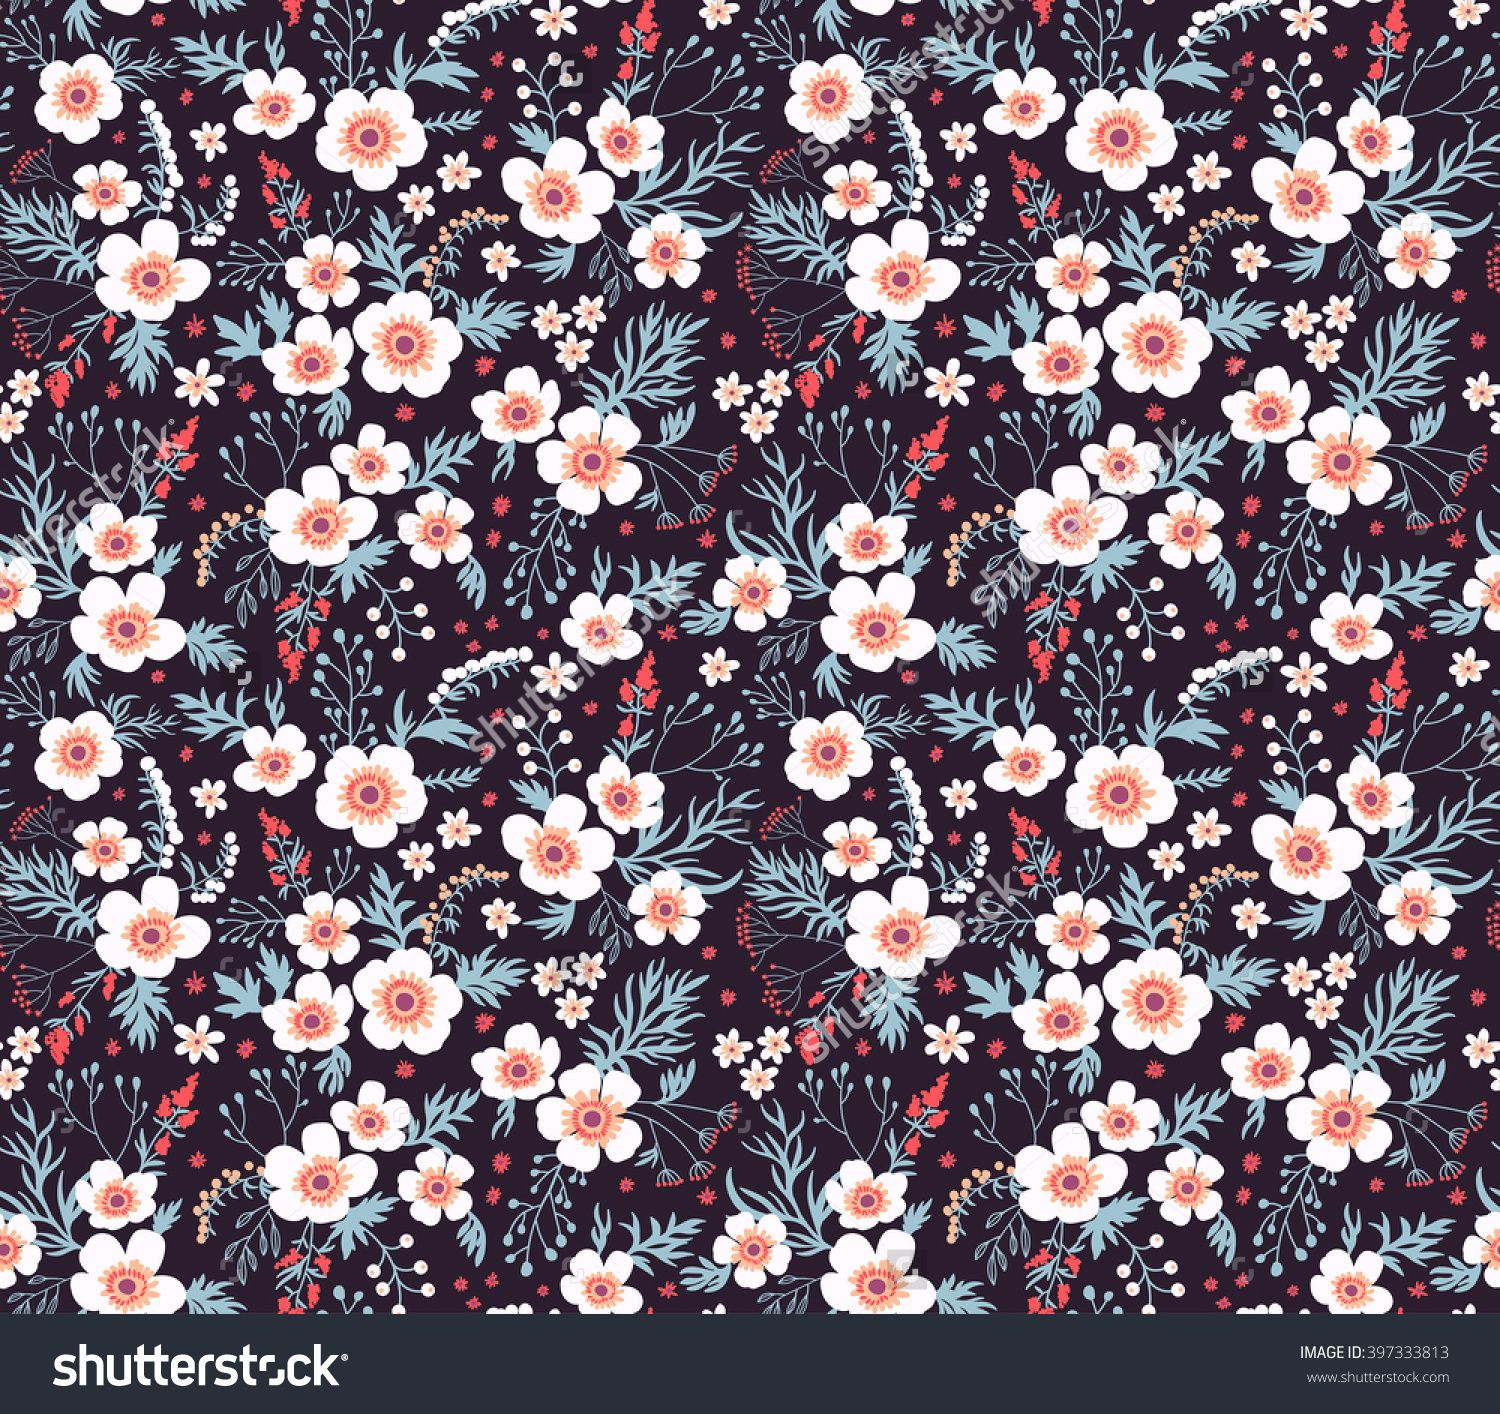 Cute Pattern In Small Flower Small White Flowers Black